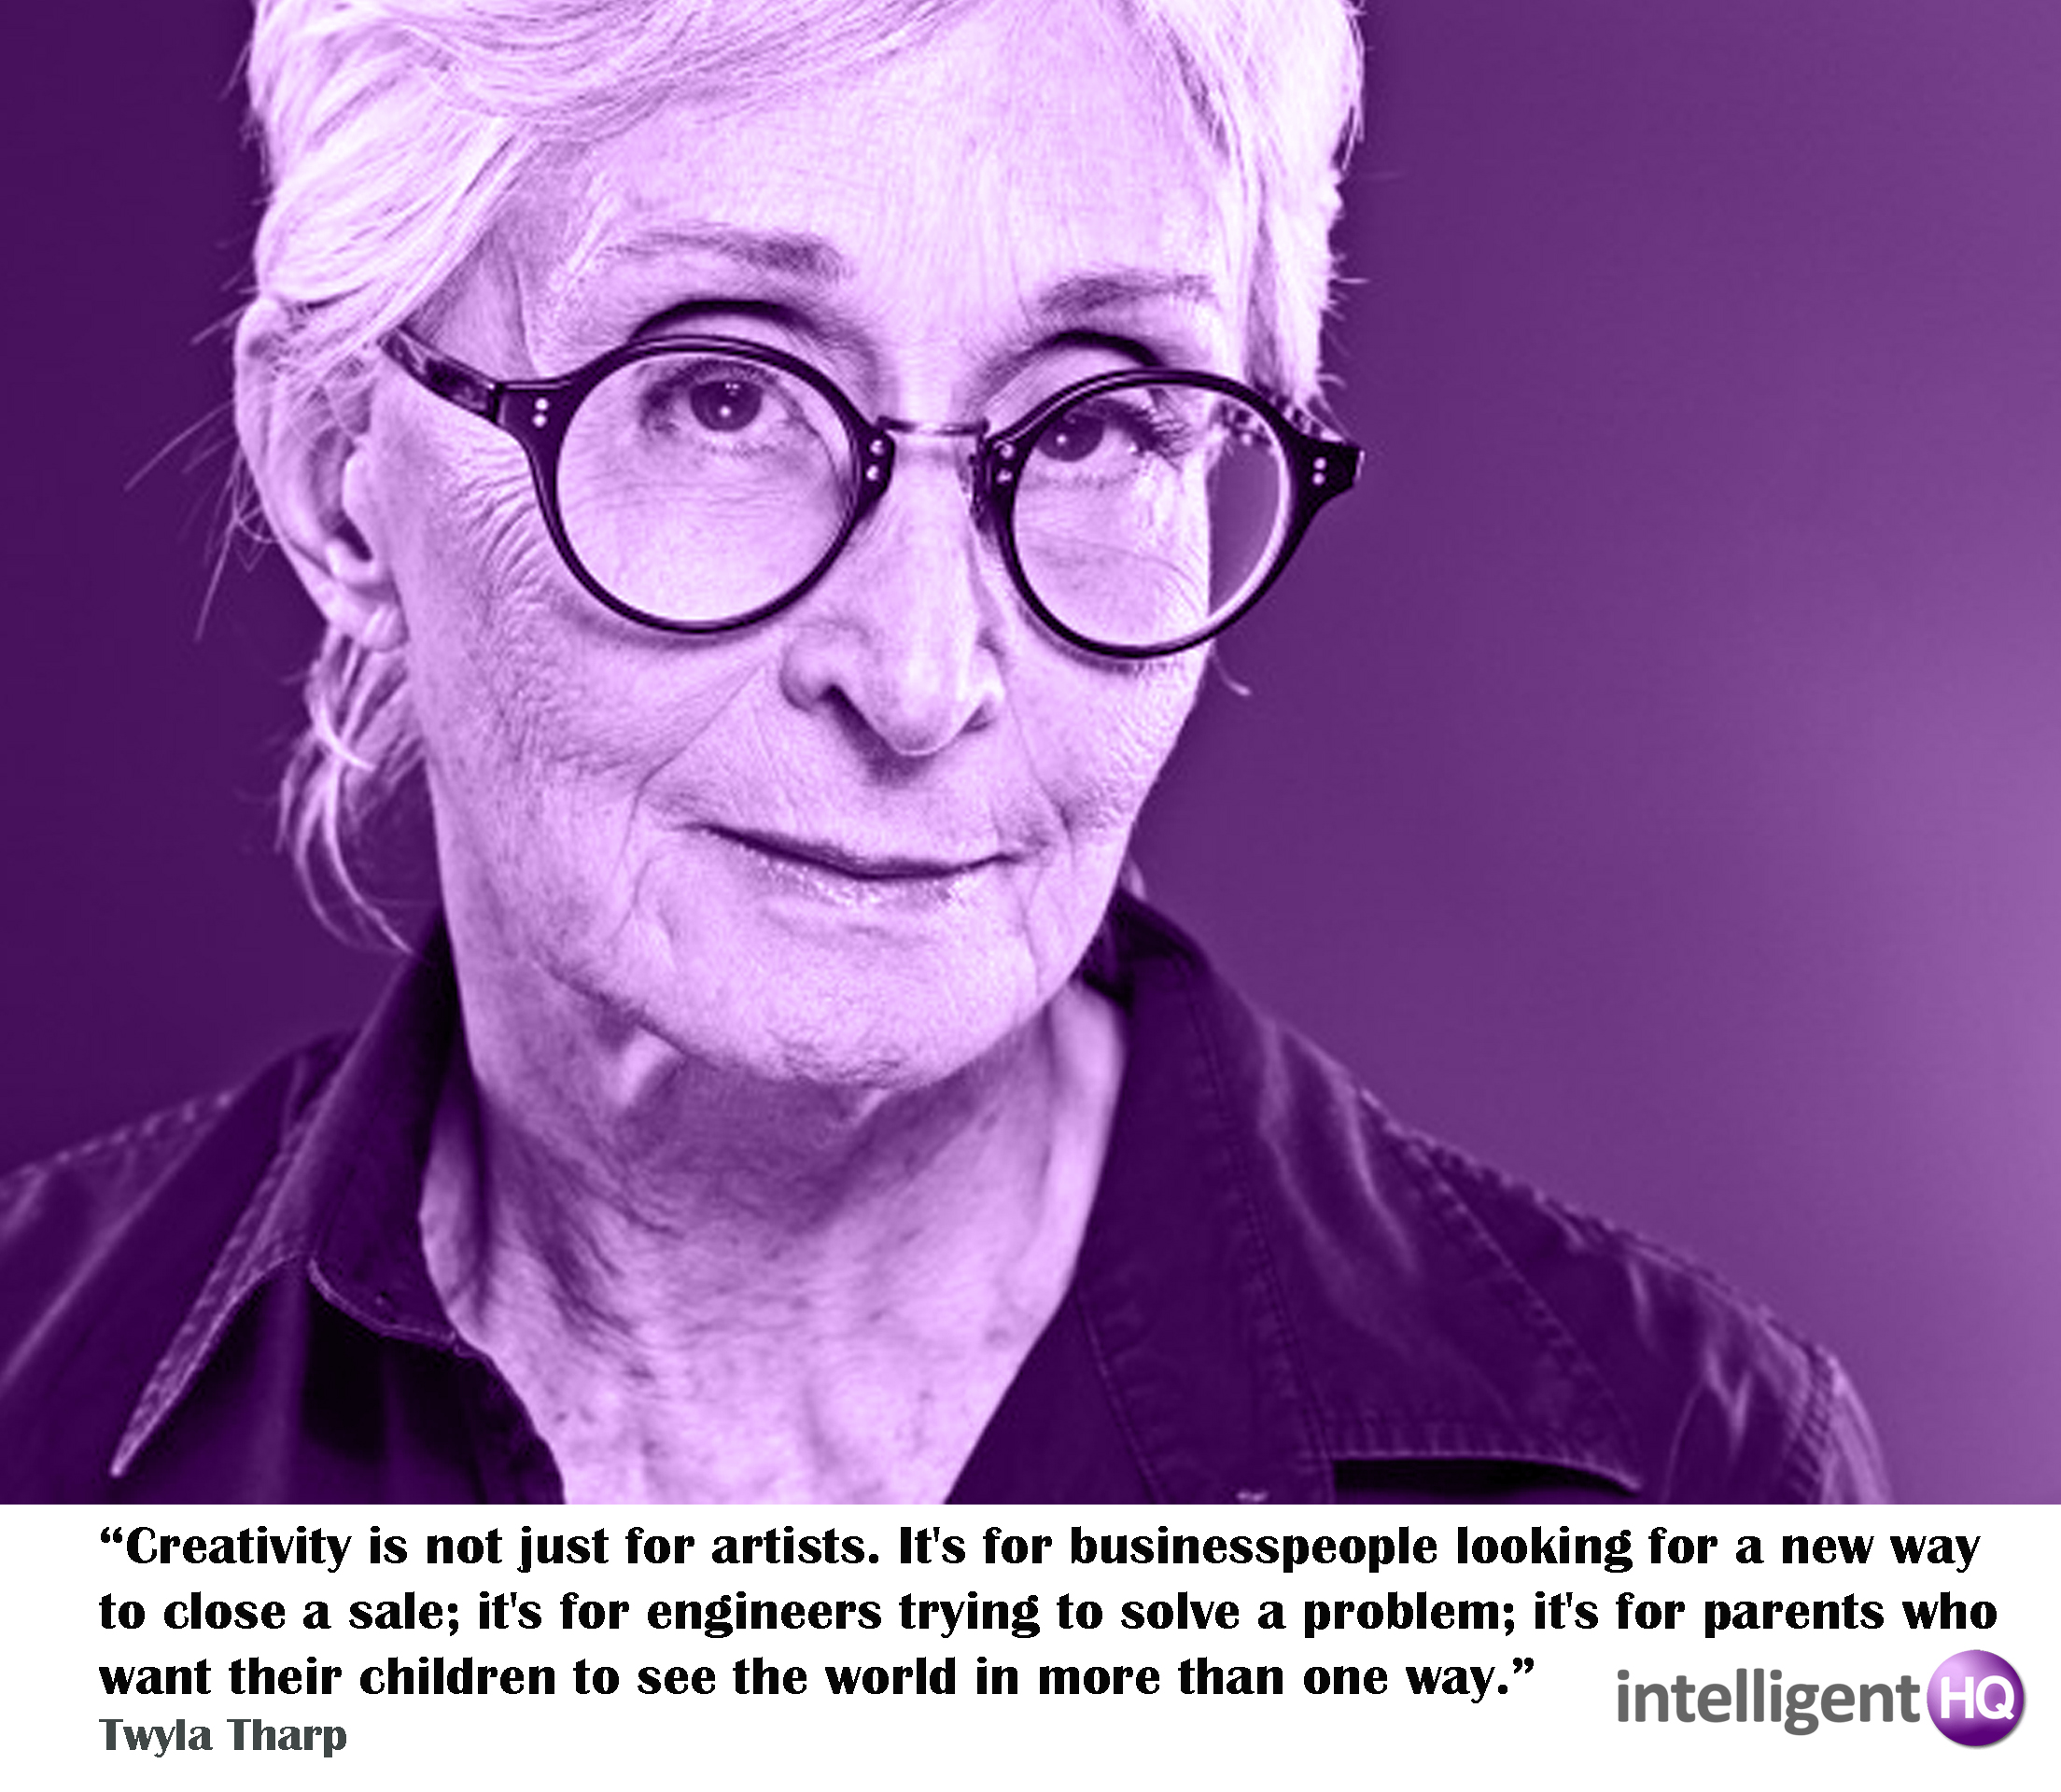 Twyla Tharp quote Intelligenthq